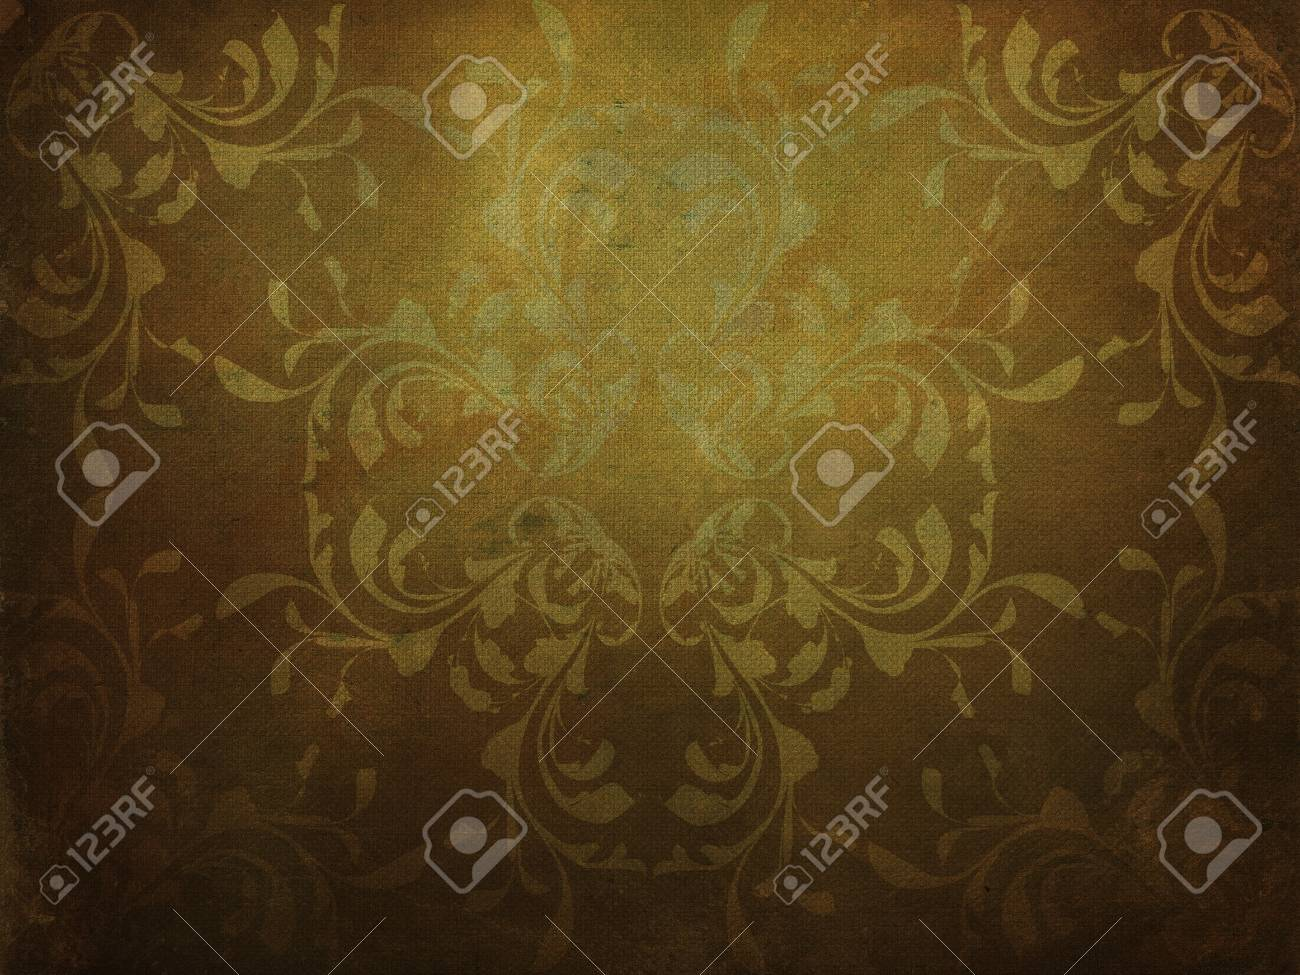 Illustration of abstract grunge yellow background with pattern texture. Stock Illustration - 16516363